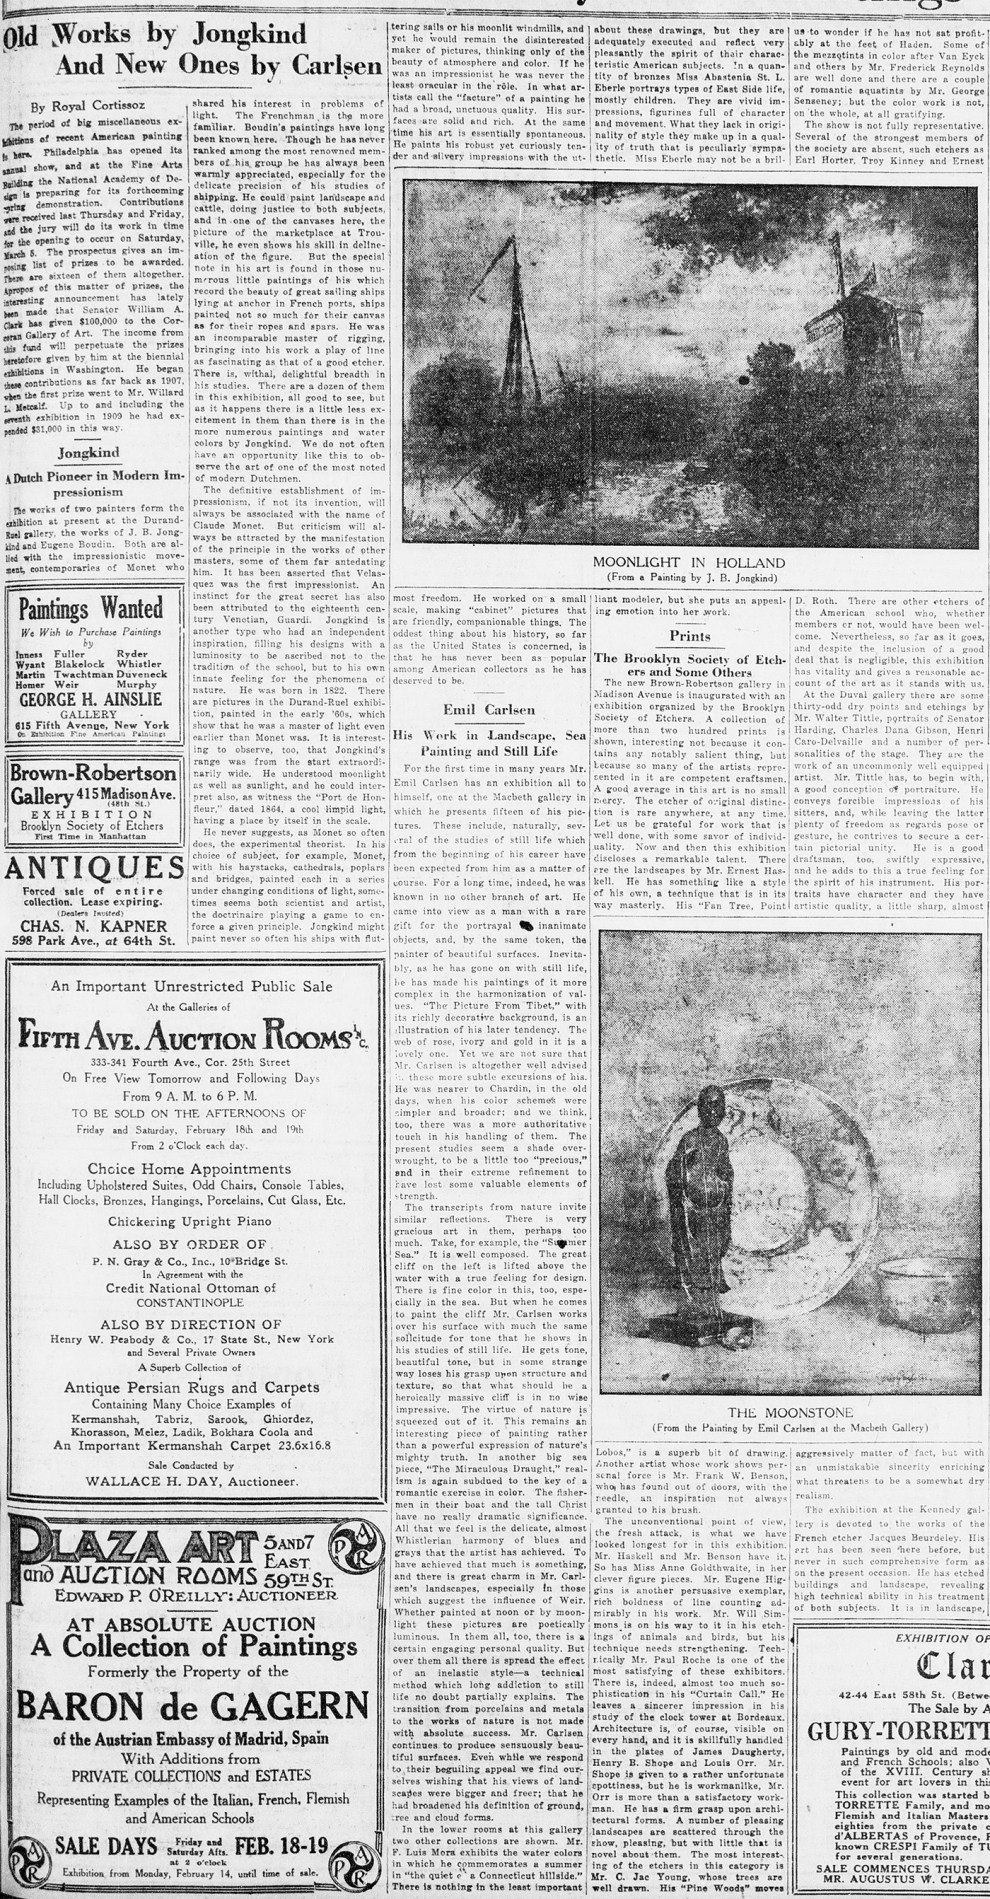 "New-York Tribune, New York, NY, ""Old Works by Jongkind And New Ones by Carlsen"", Sunday, February 13, 1921, page 7, illustrated: b&w on page 7"